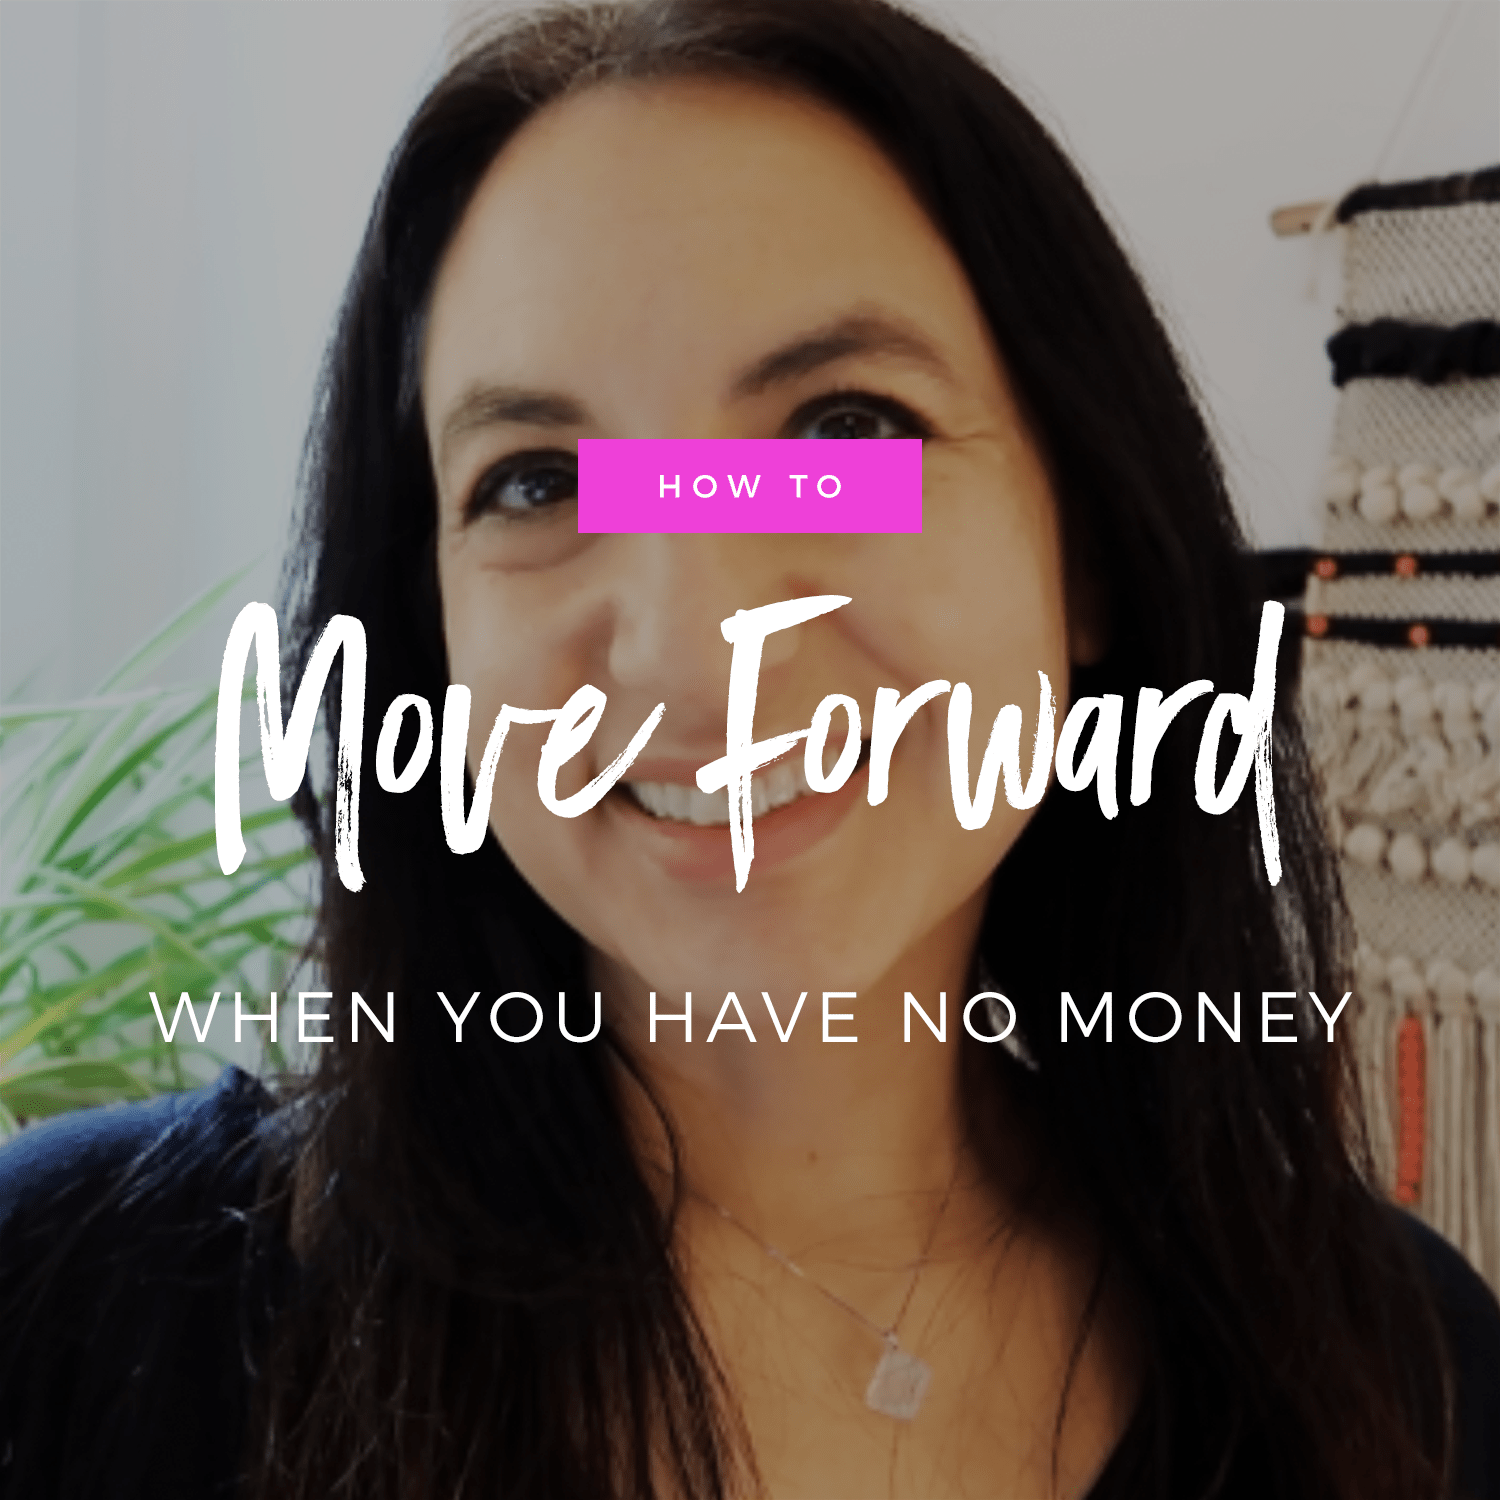 How To Move Forward When You Have No Money